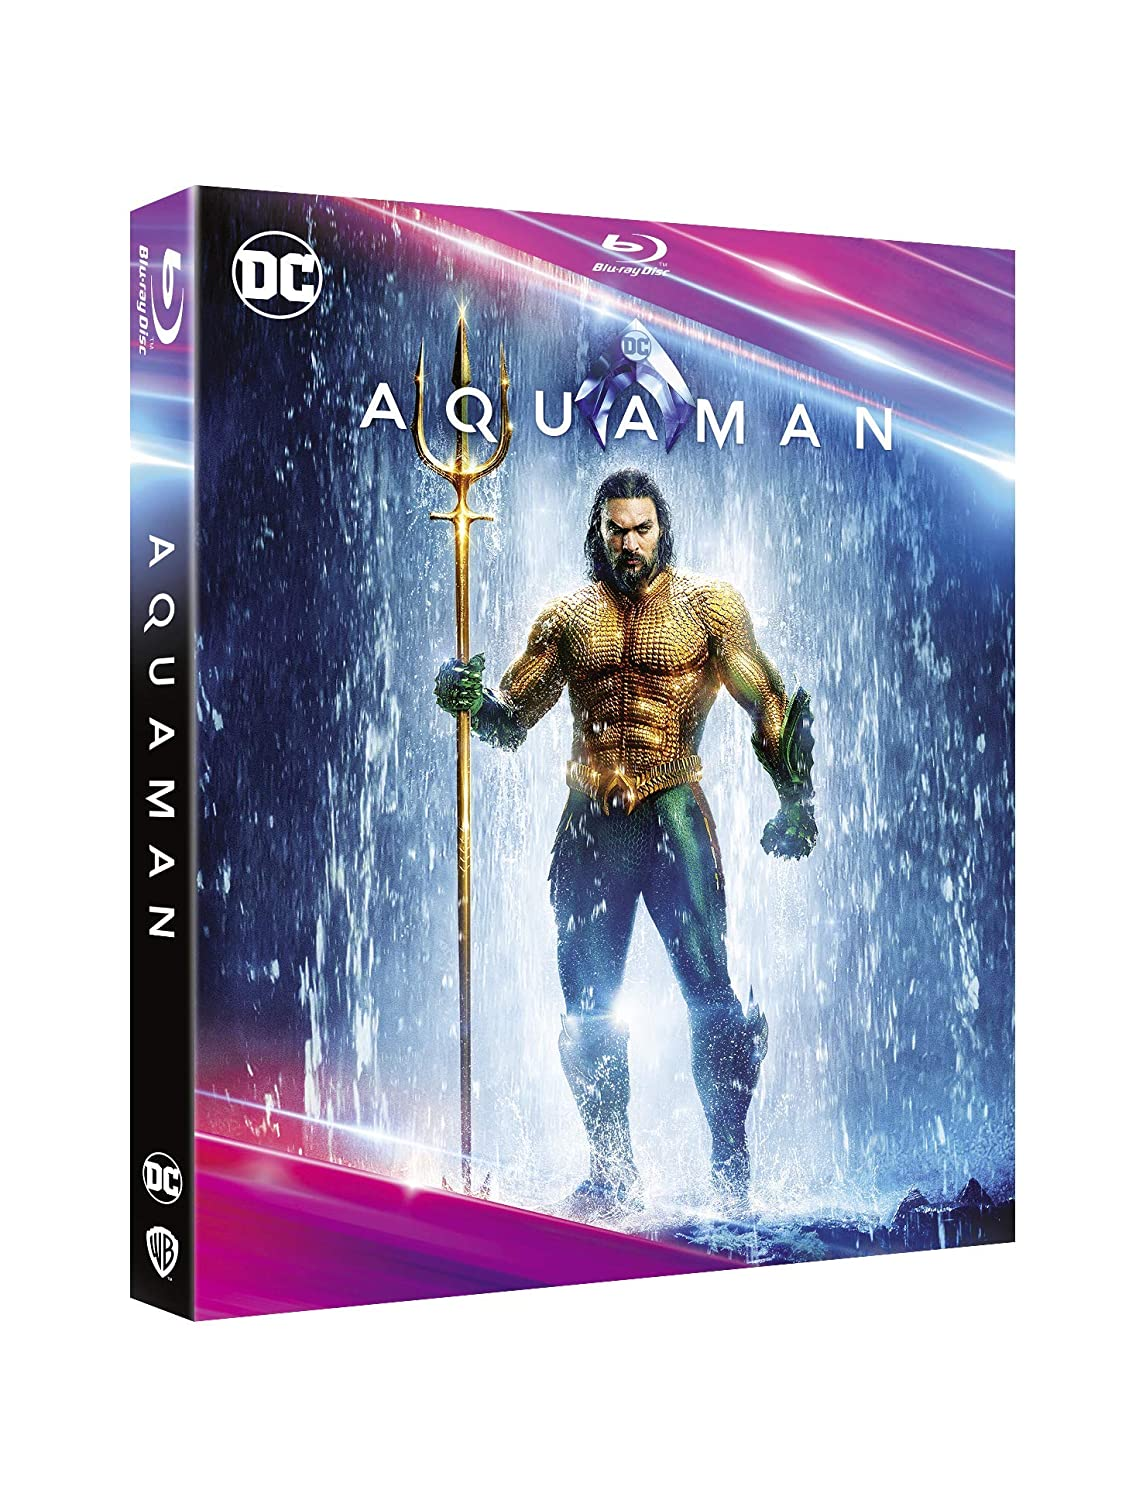 AQUAMAN (DC COMICS COLLECTION) - BLU RAY